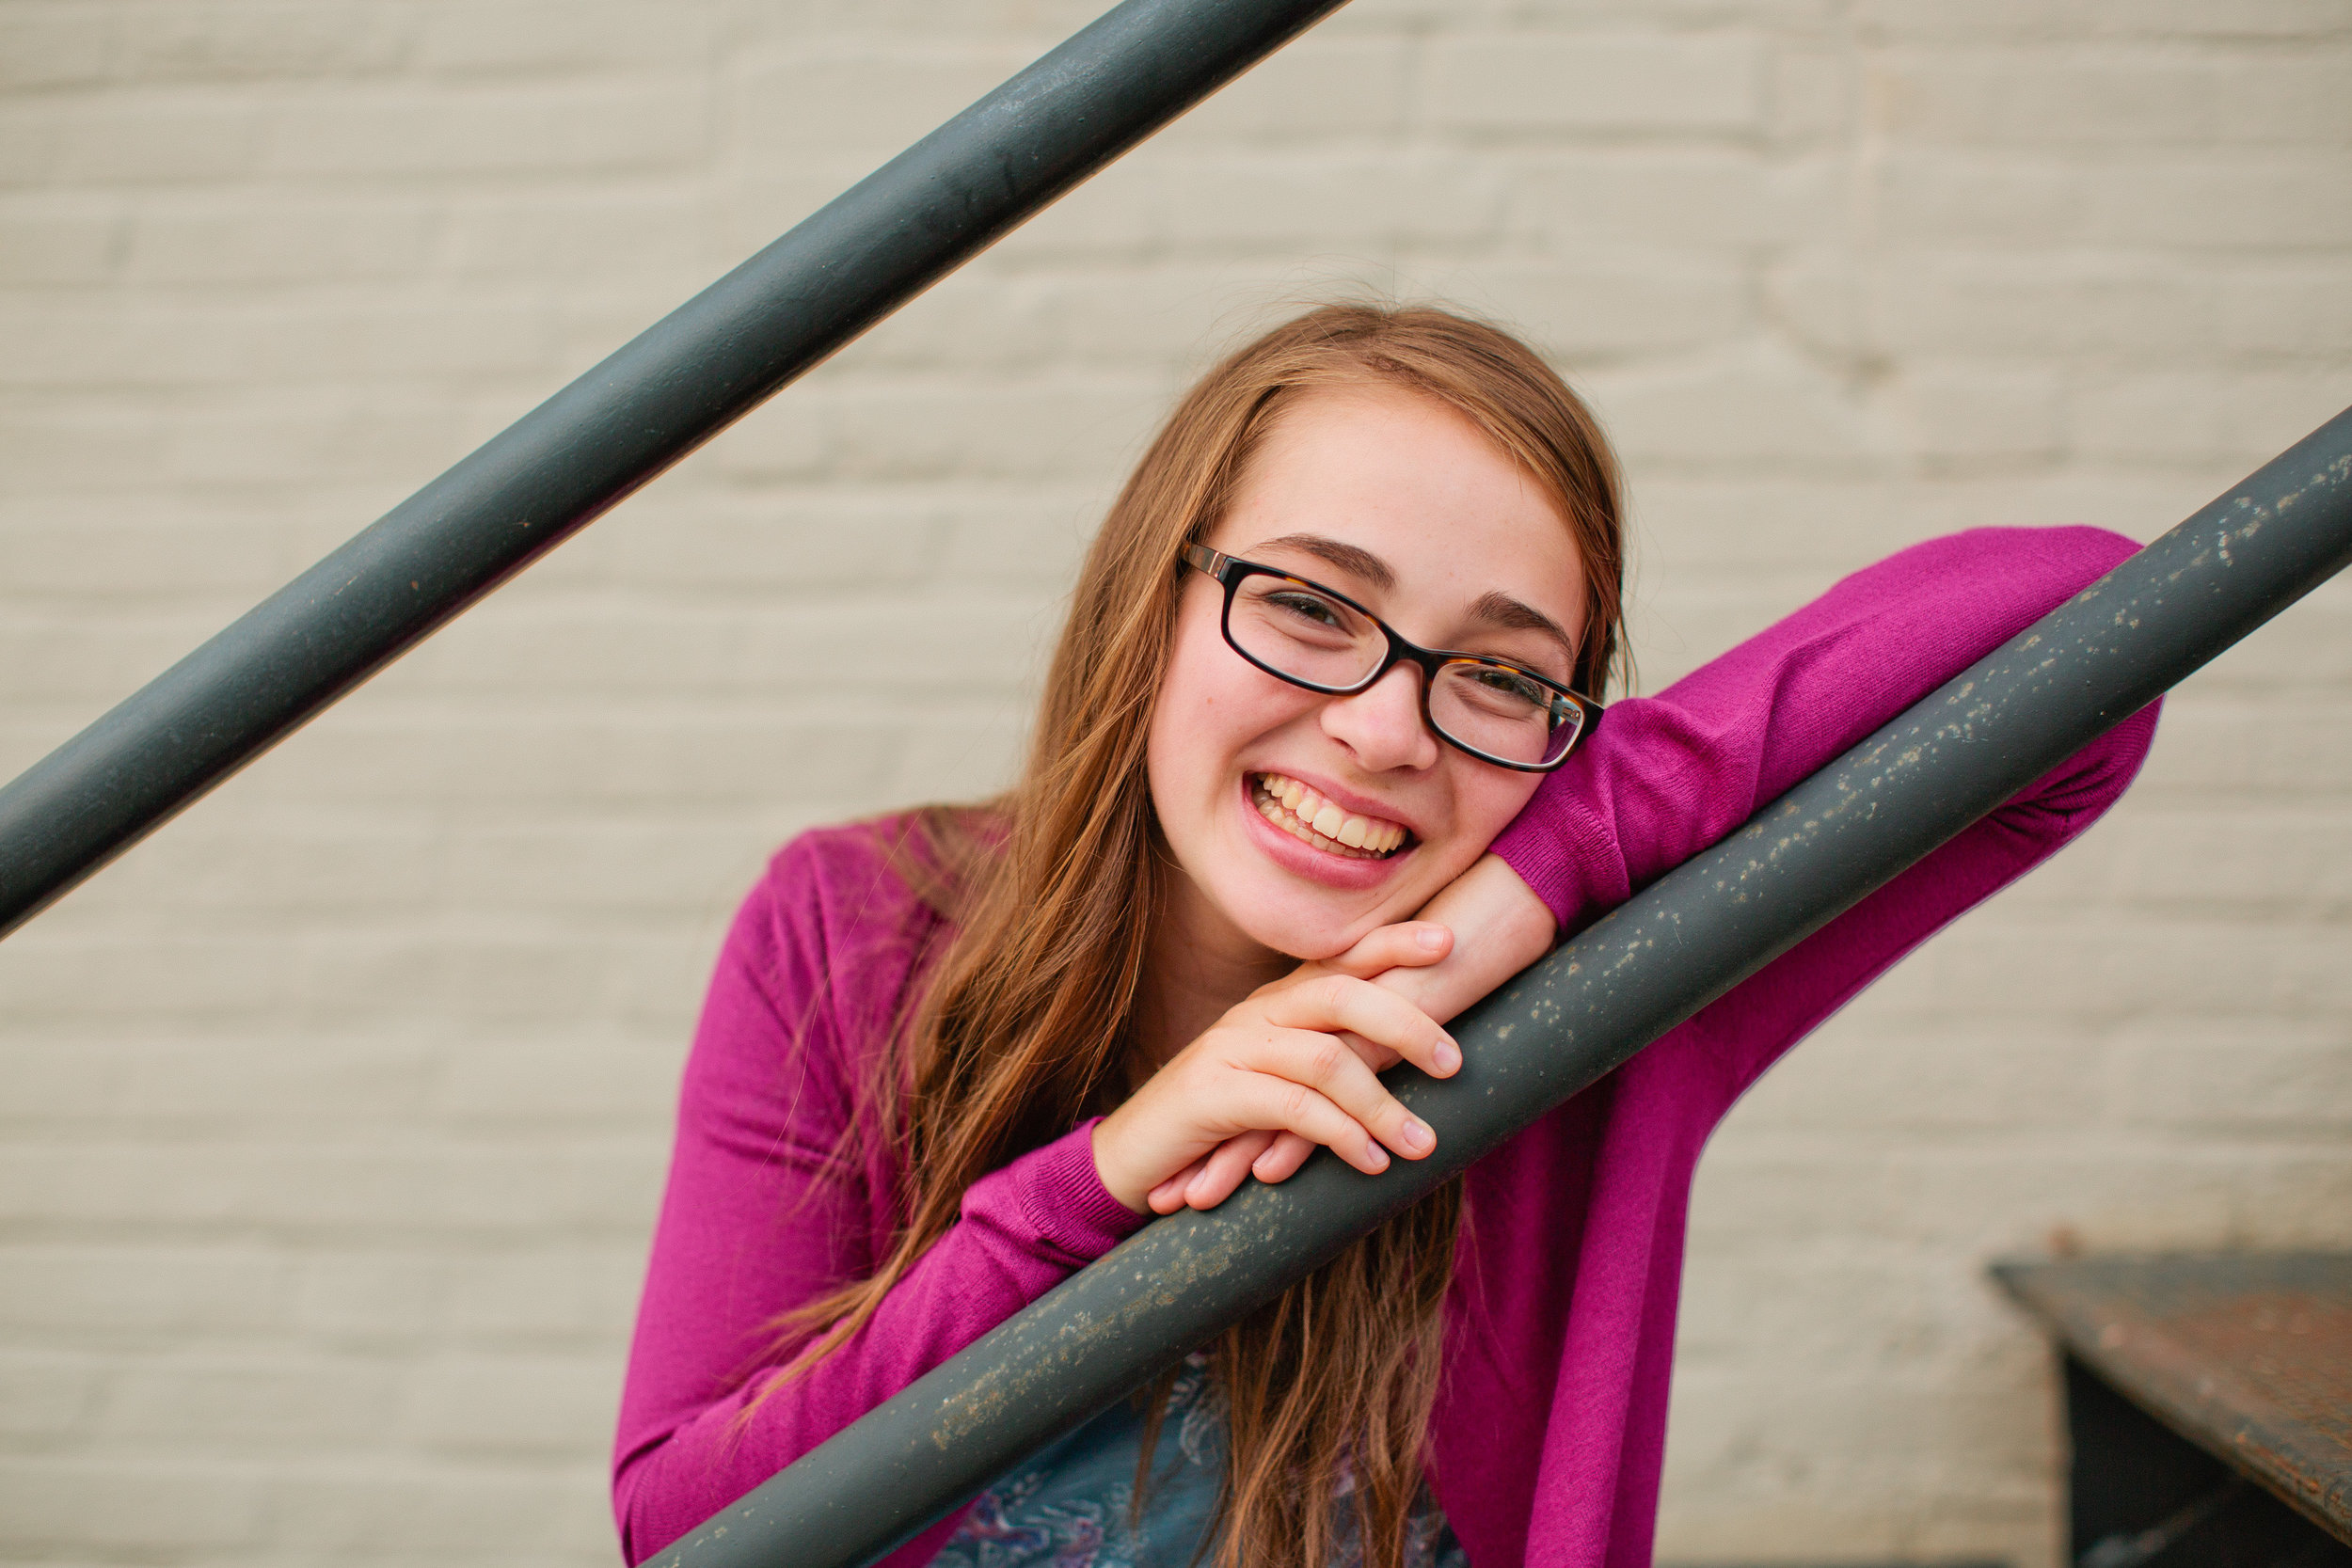 des moines senior photography on downtown metal stairs // hannah wearing glasses and laughing